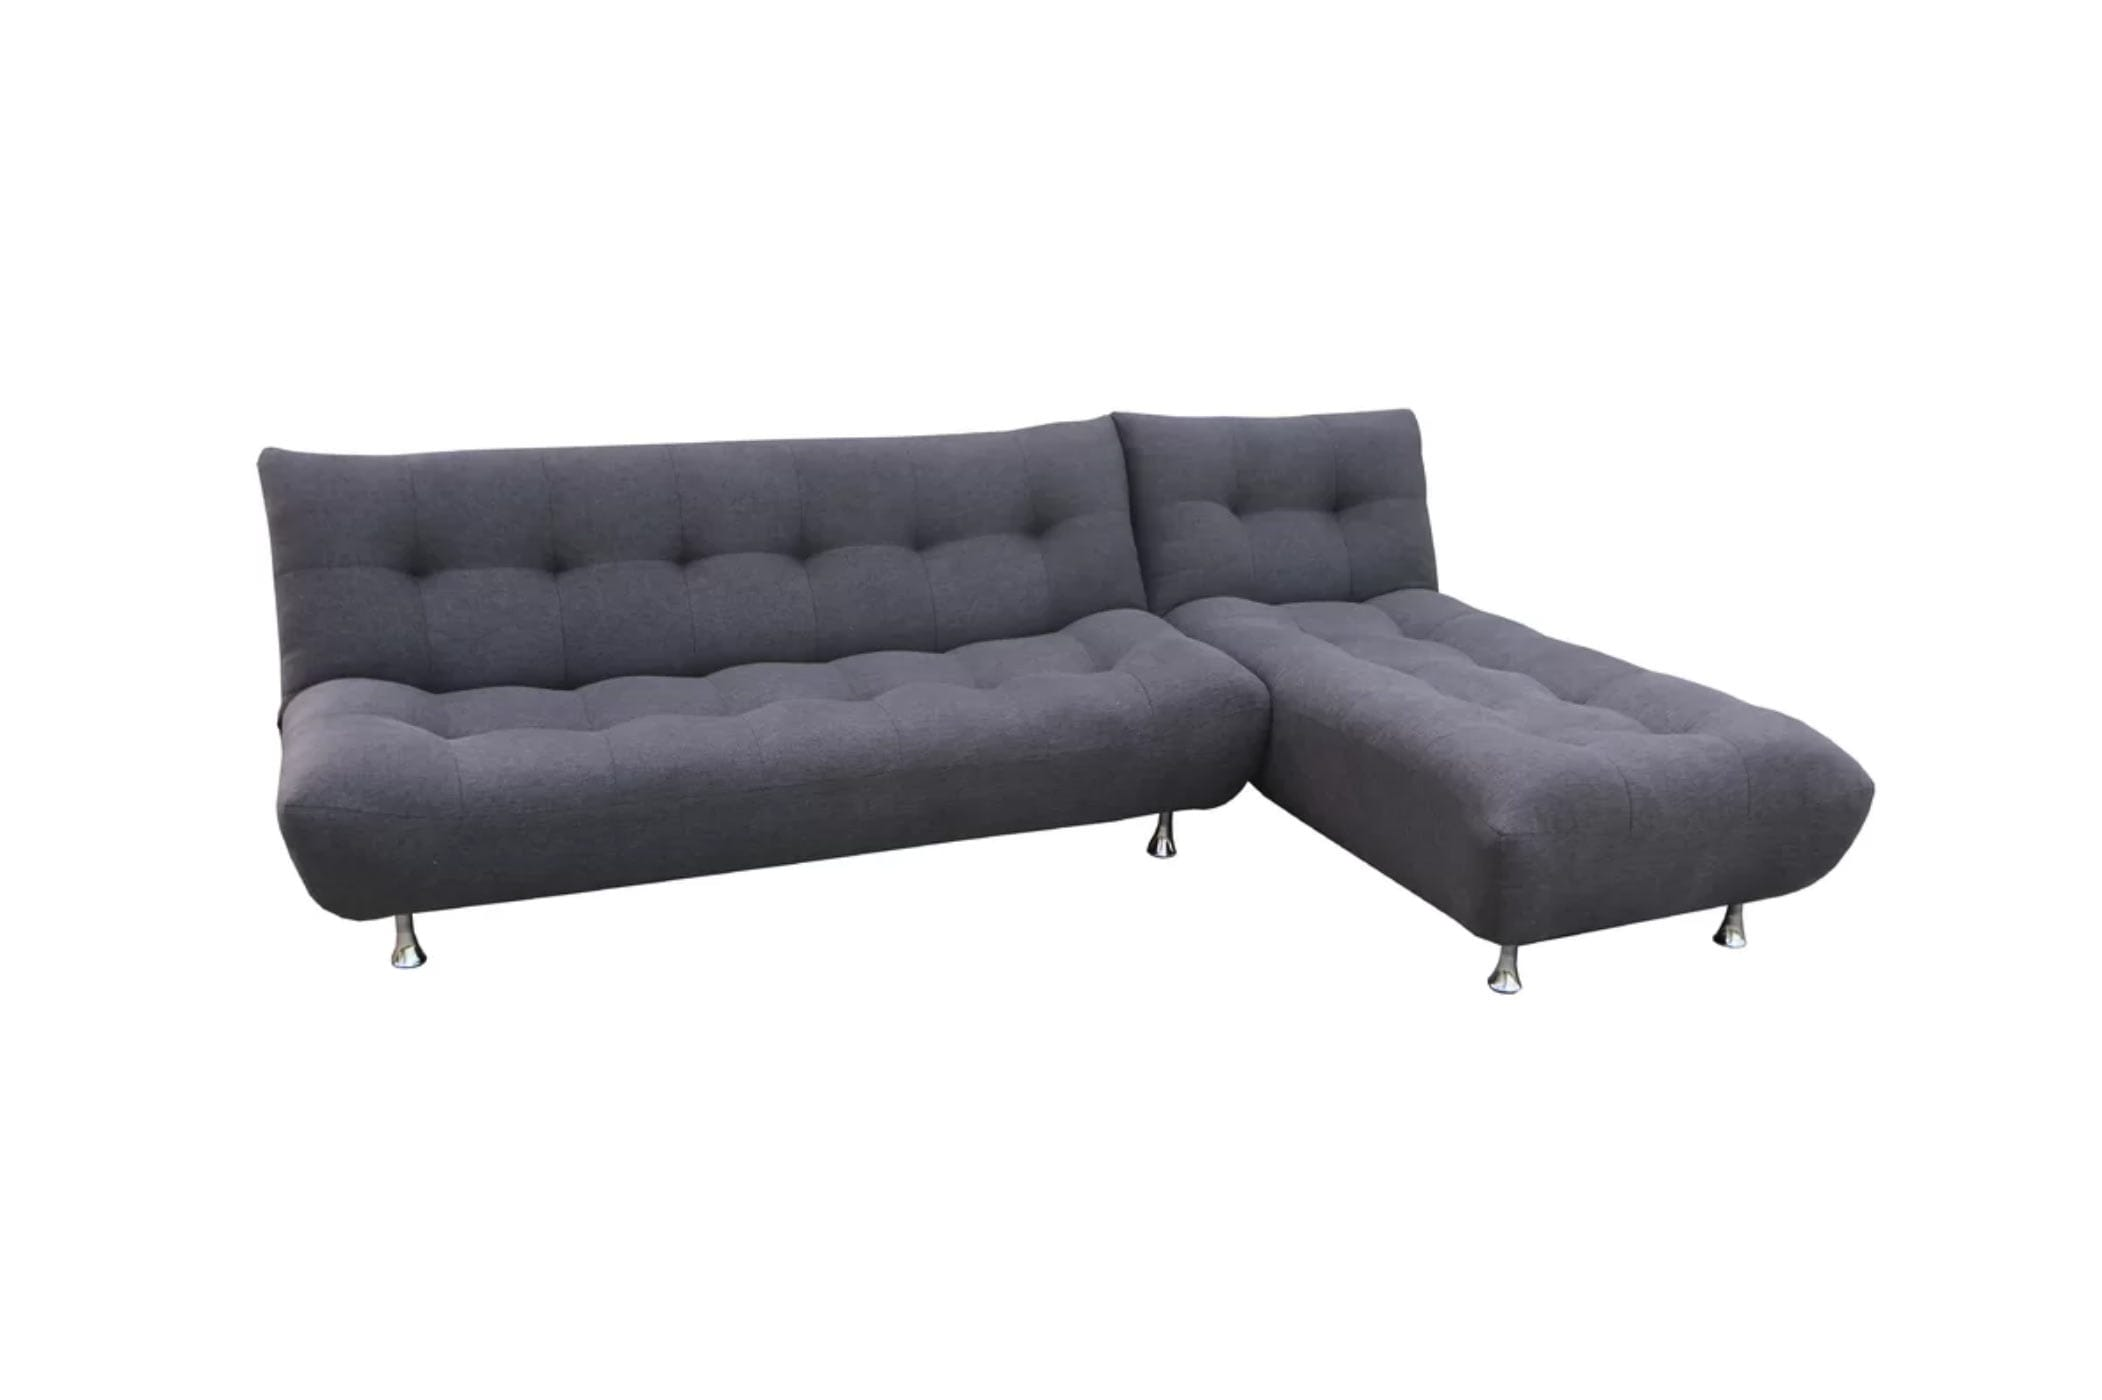 Cloud Midnight Gray Sofa Bed Woptional Chaise By Nightday Furniture